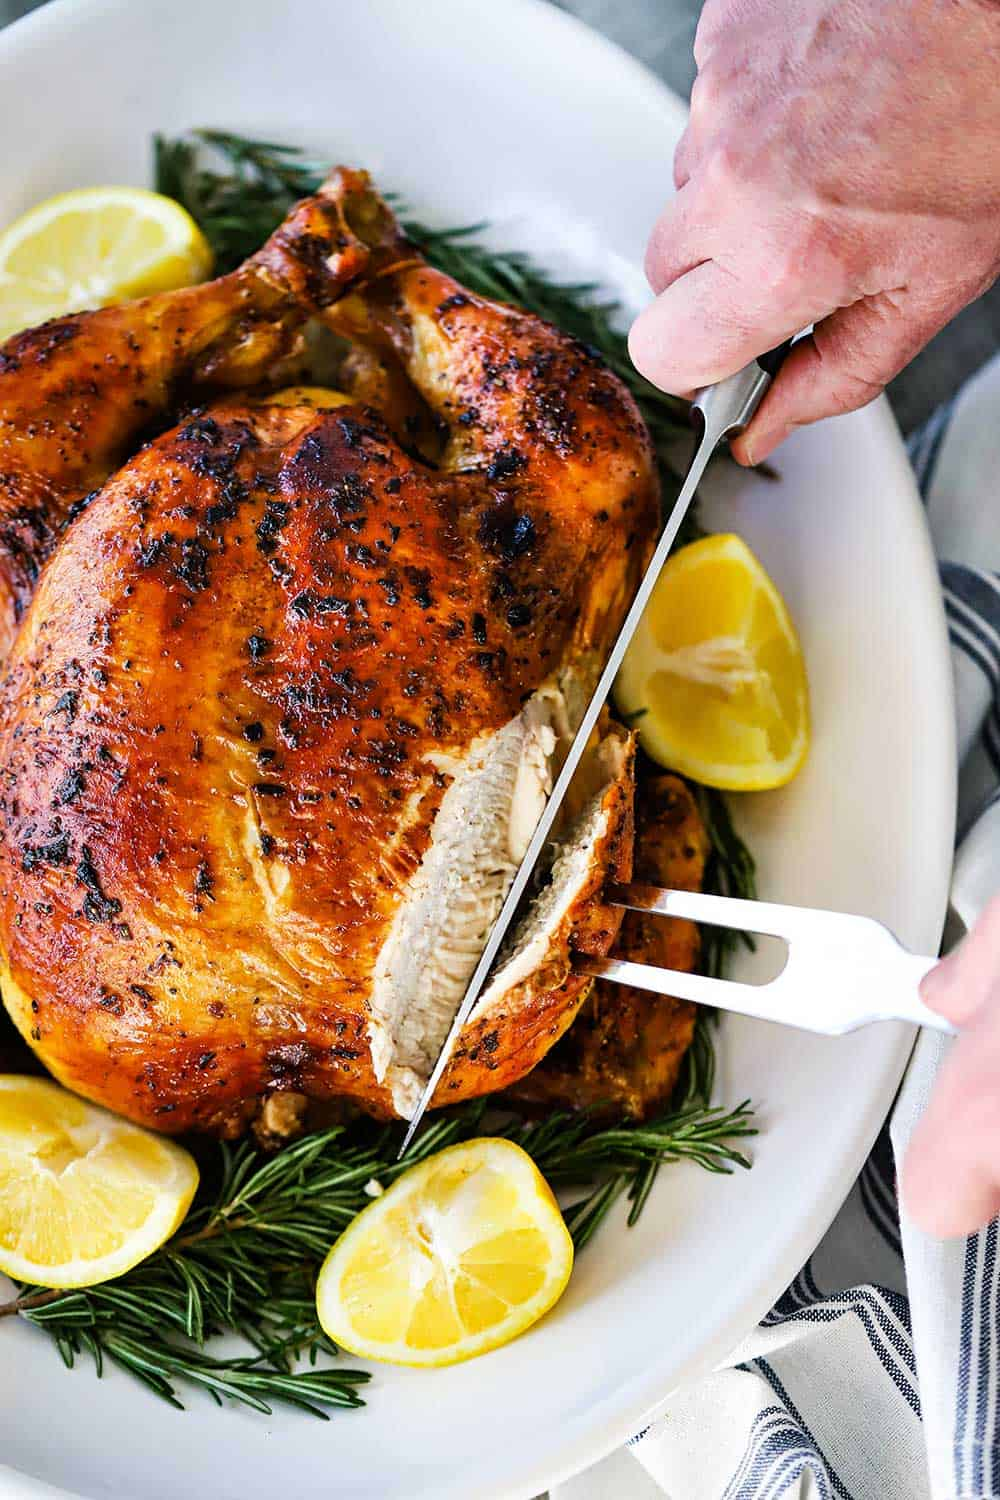 A person using a large fork and knife to slice in a roast chicken on a platter with cut lemons and herbs surrounding the bird.